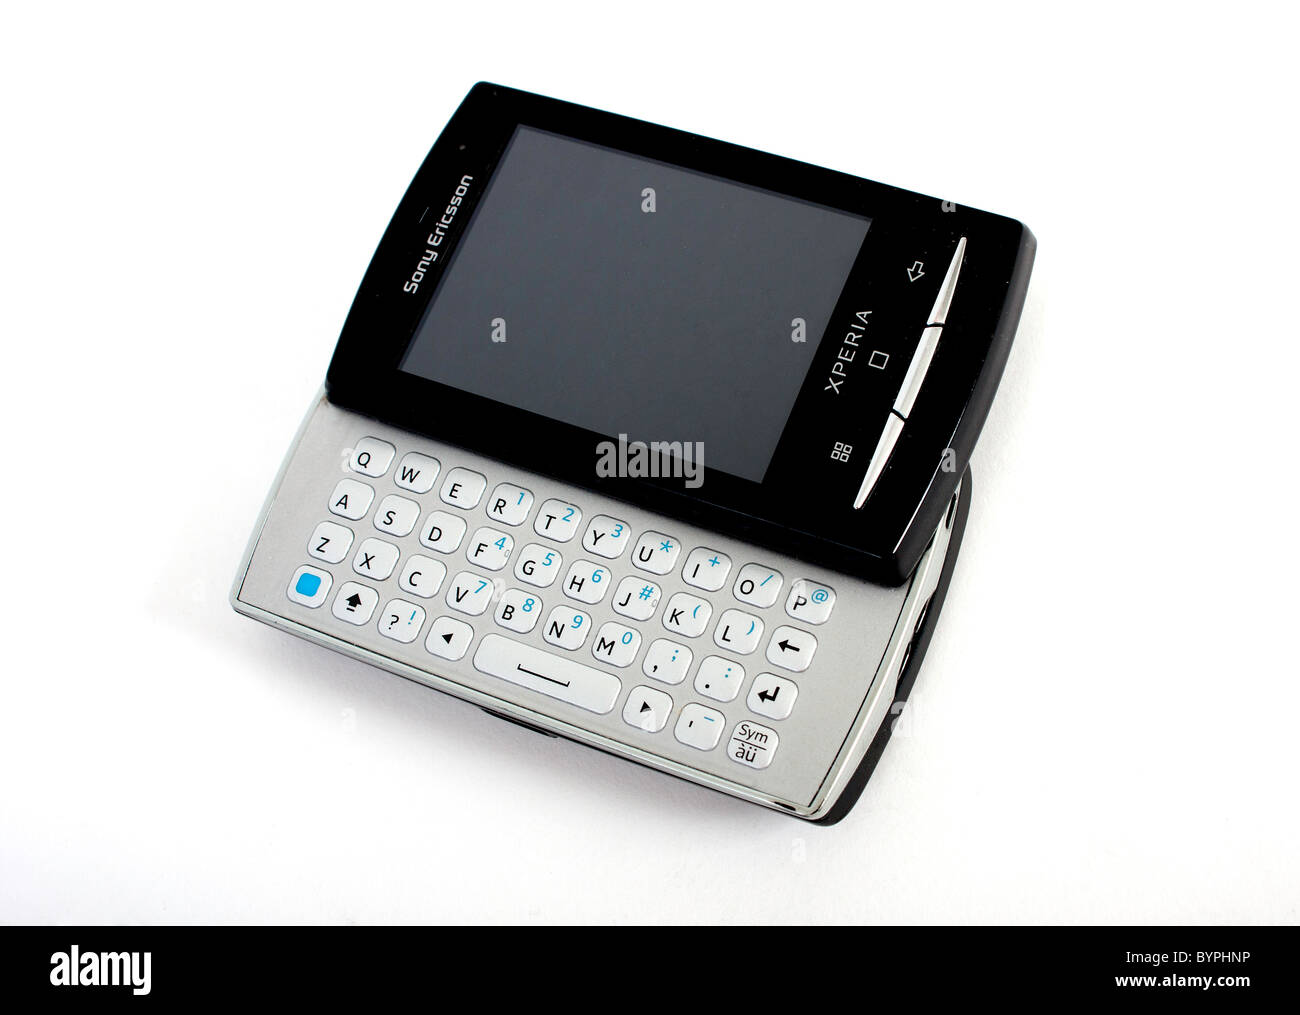 sony ericsson slide phone. stock photo - the new sony ericsson xperia mini pro mobile phone with full slide out qwerty keyboard; displaying a blank screen